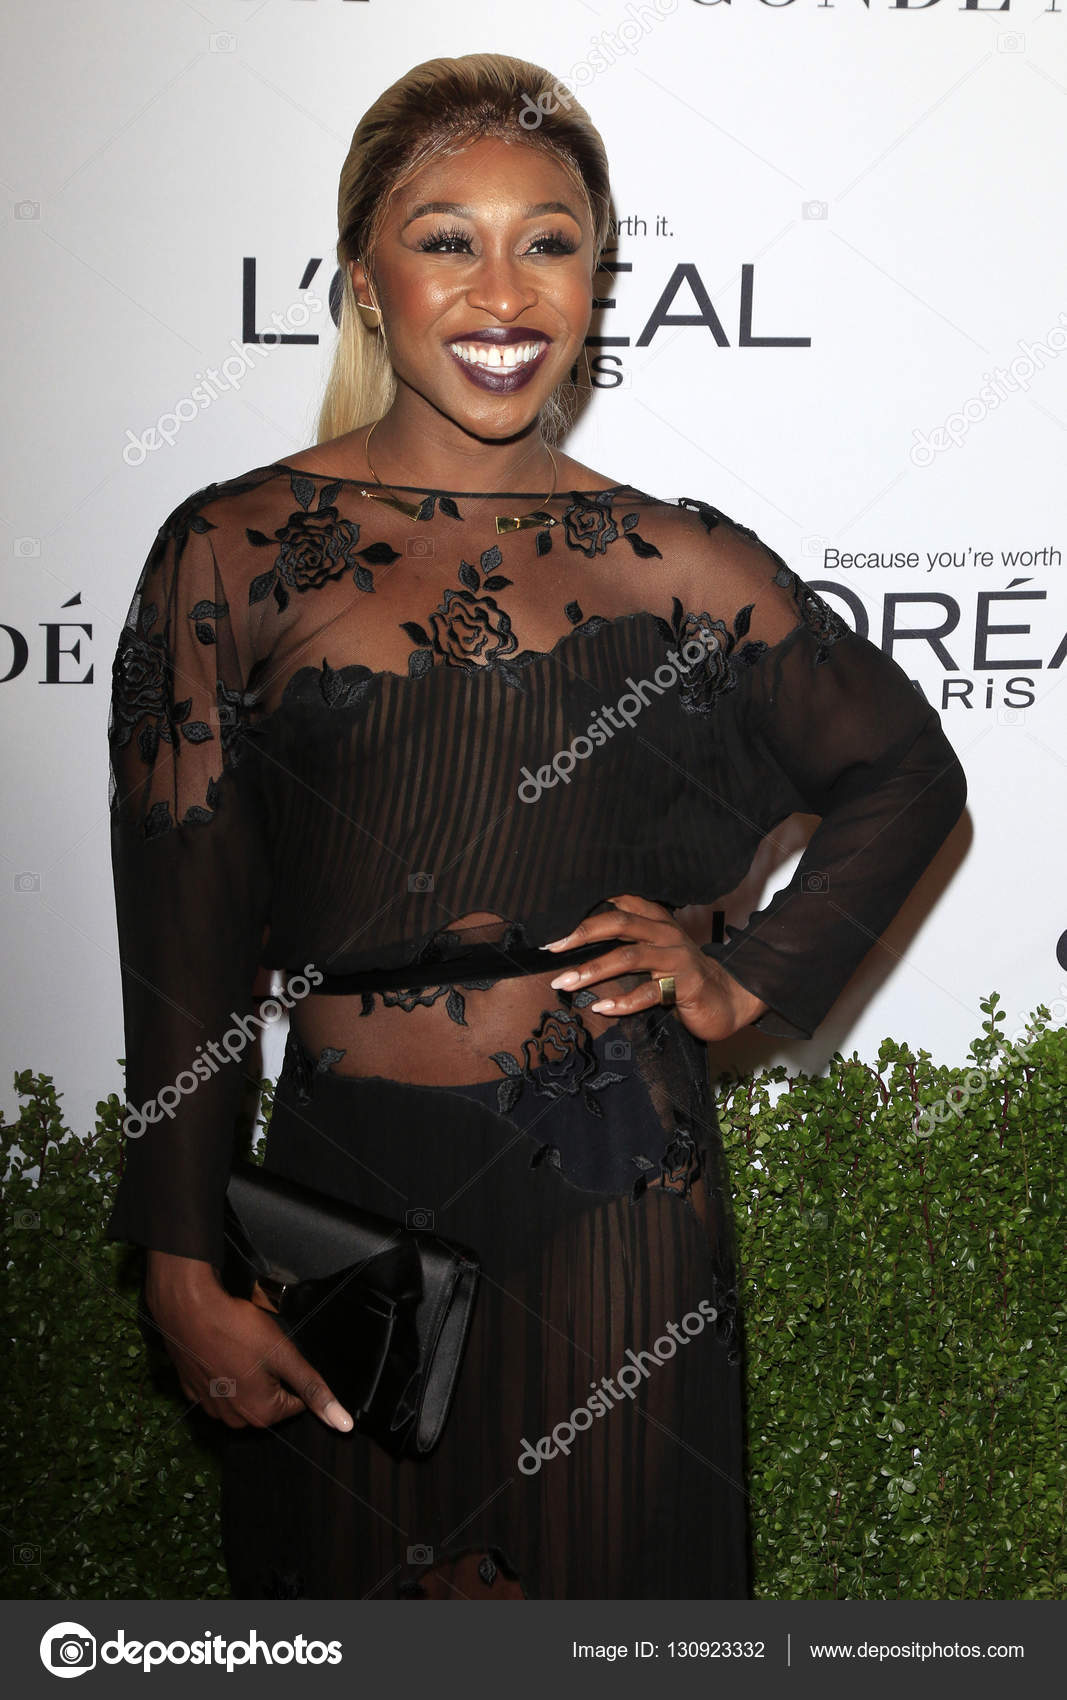 Sexy Cynthia Erivo nudes (99 photo), Ass, Cleavage, Twitter, cleavage 2020